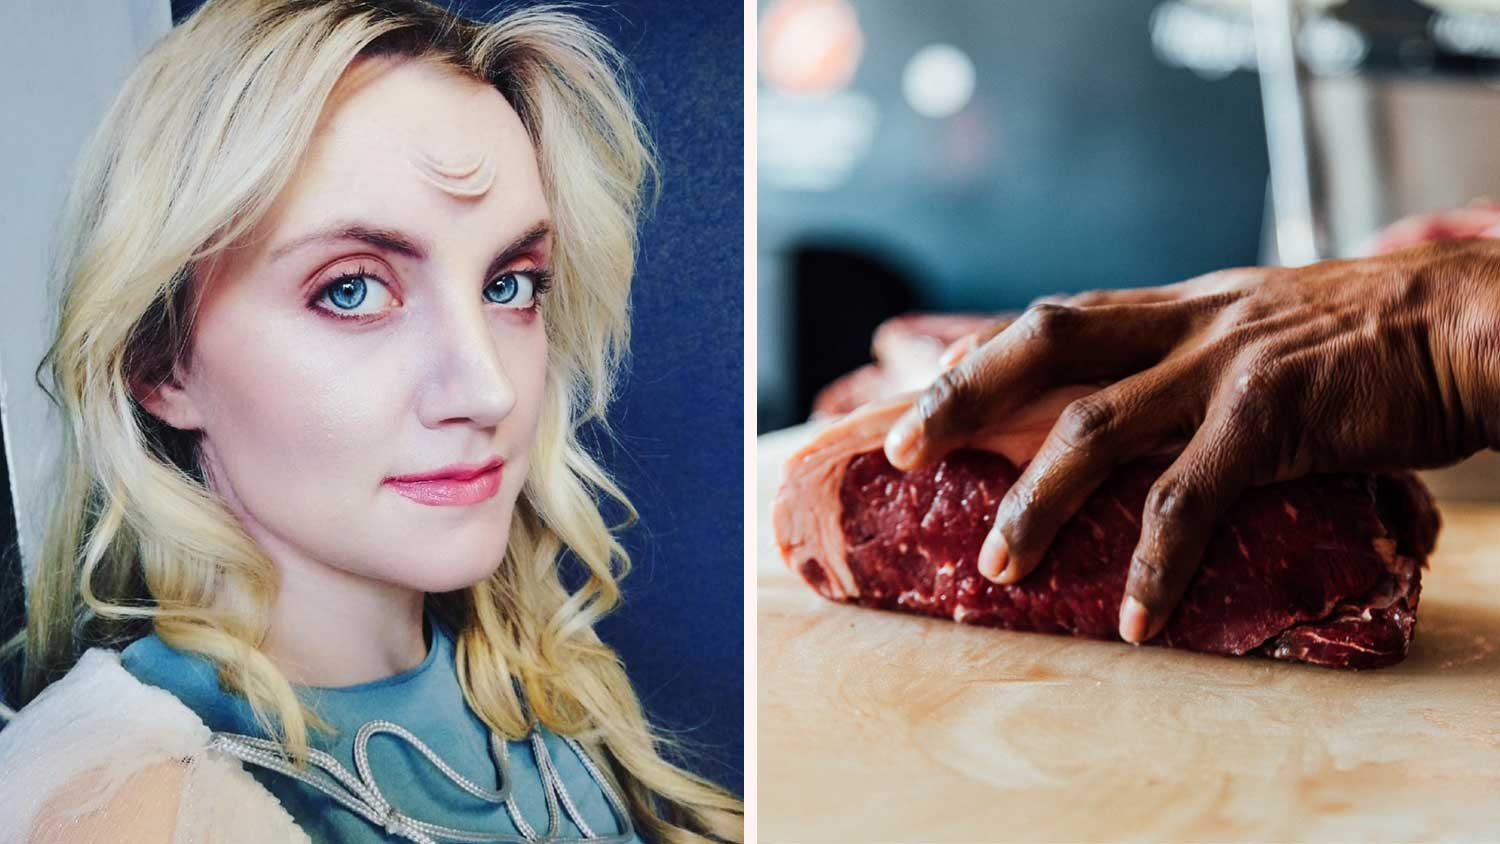 Alien Evanna Lynch Stars In Vegan Movie About Eating 'Other' Animals